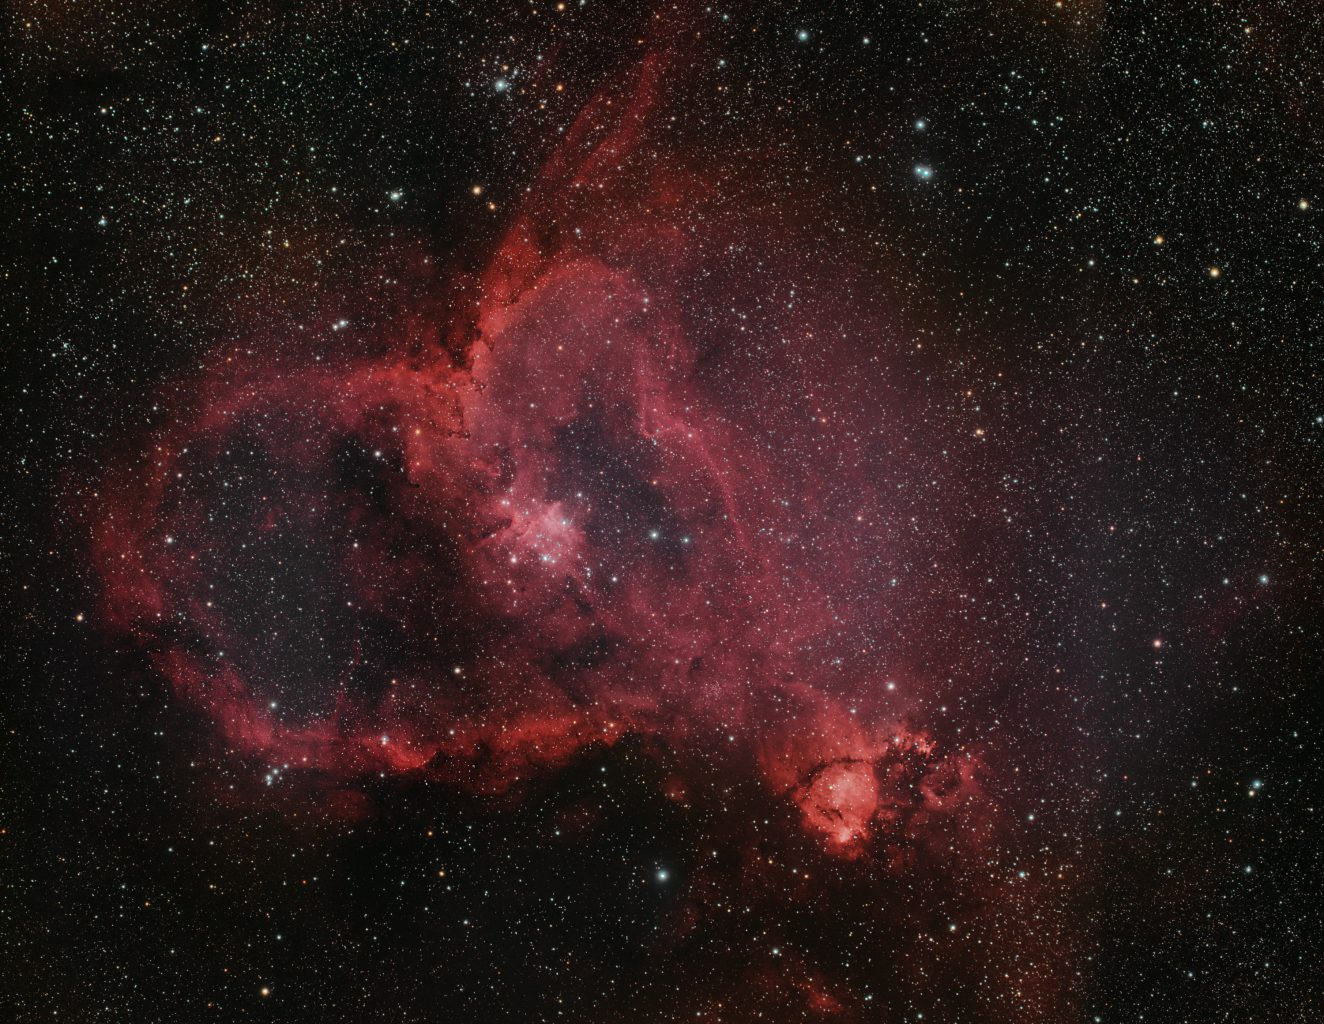 Heart-Nebula-67x300s-Nikon-D750-ISO800-Optolong-Pro-SQM20-Esprit120-F5-Meldert-Small-scaled.jpg